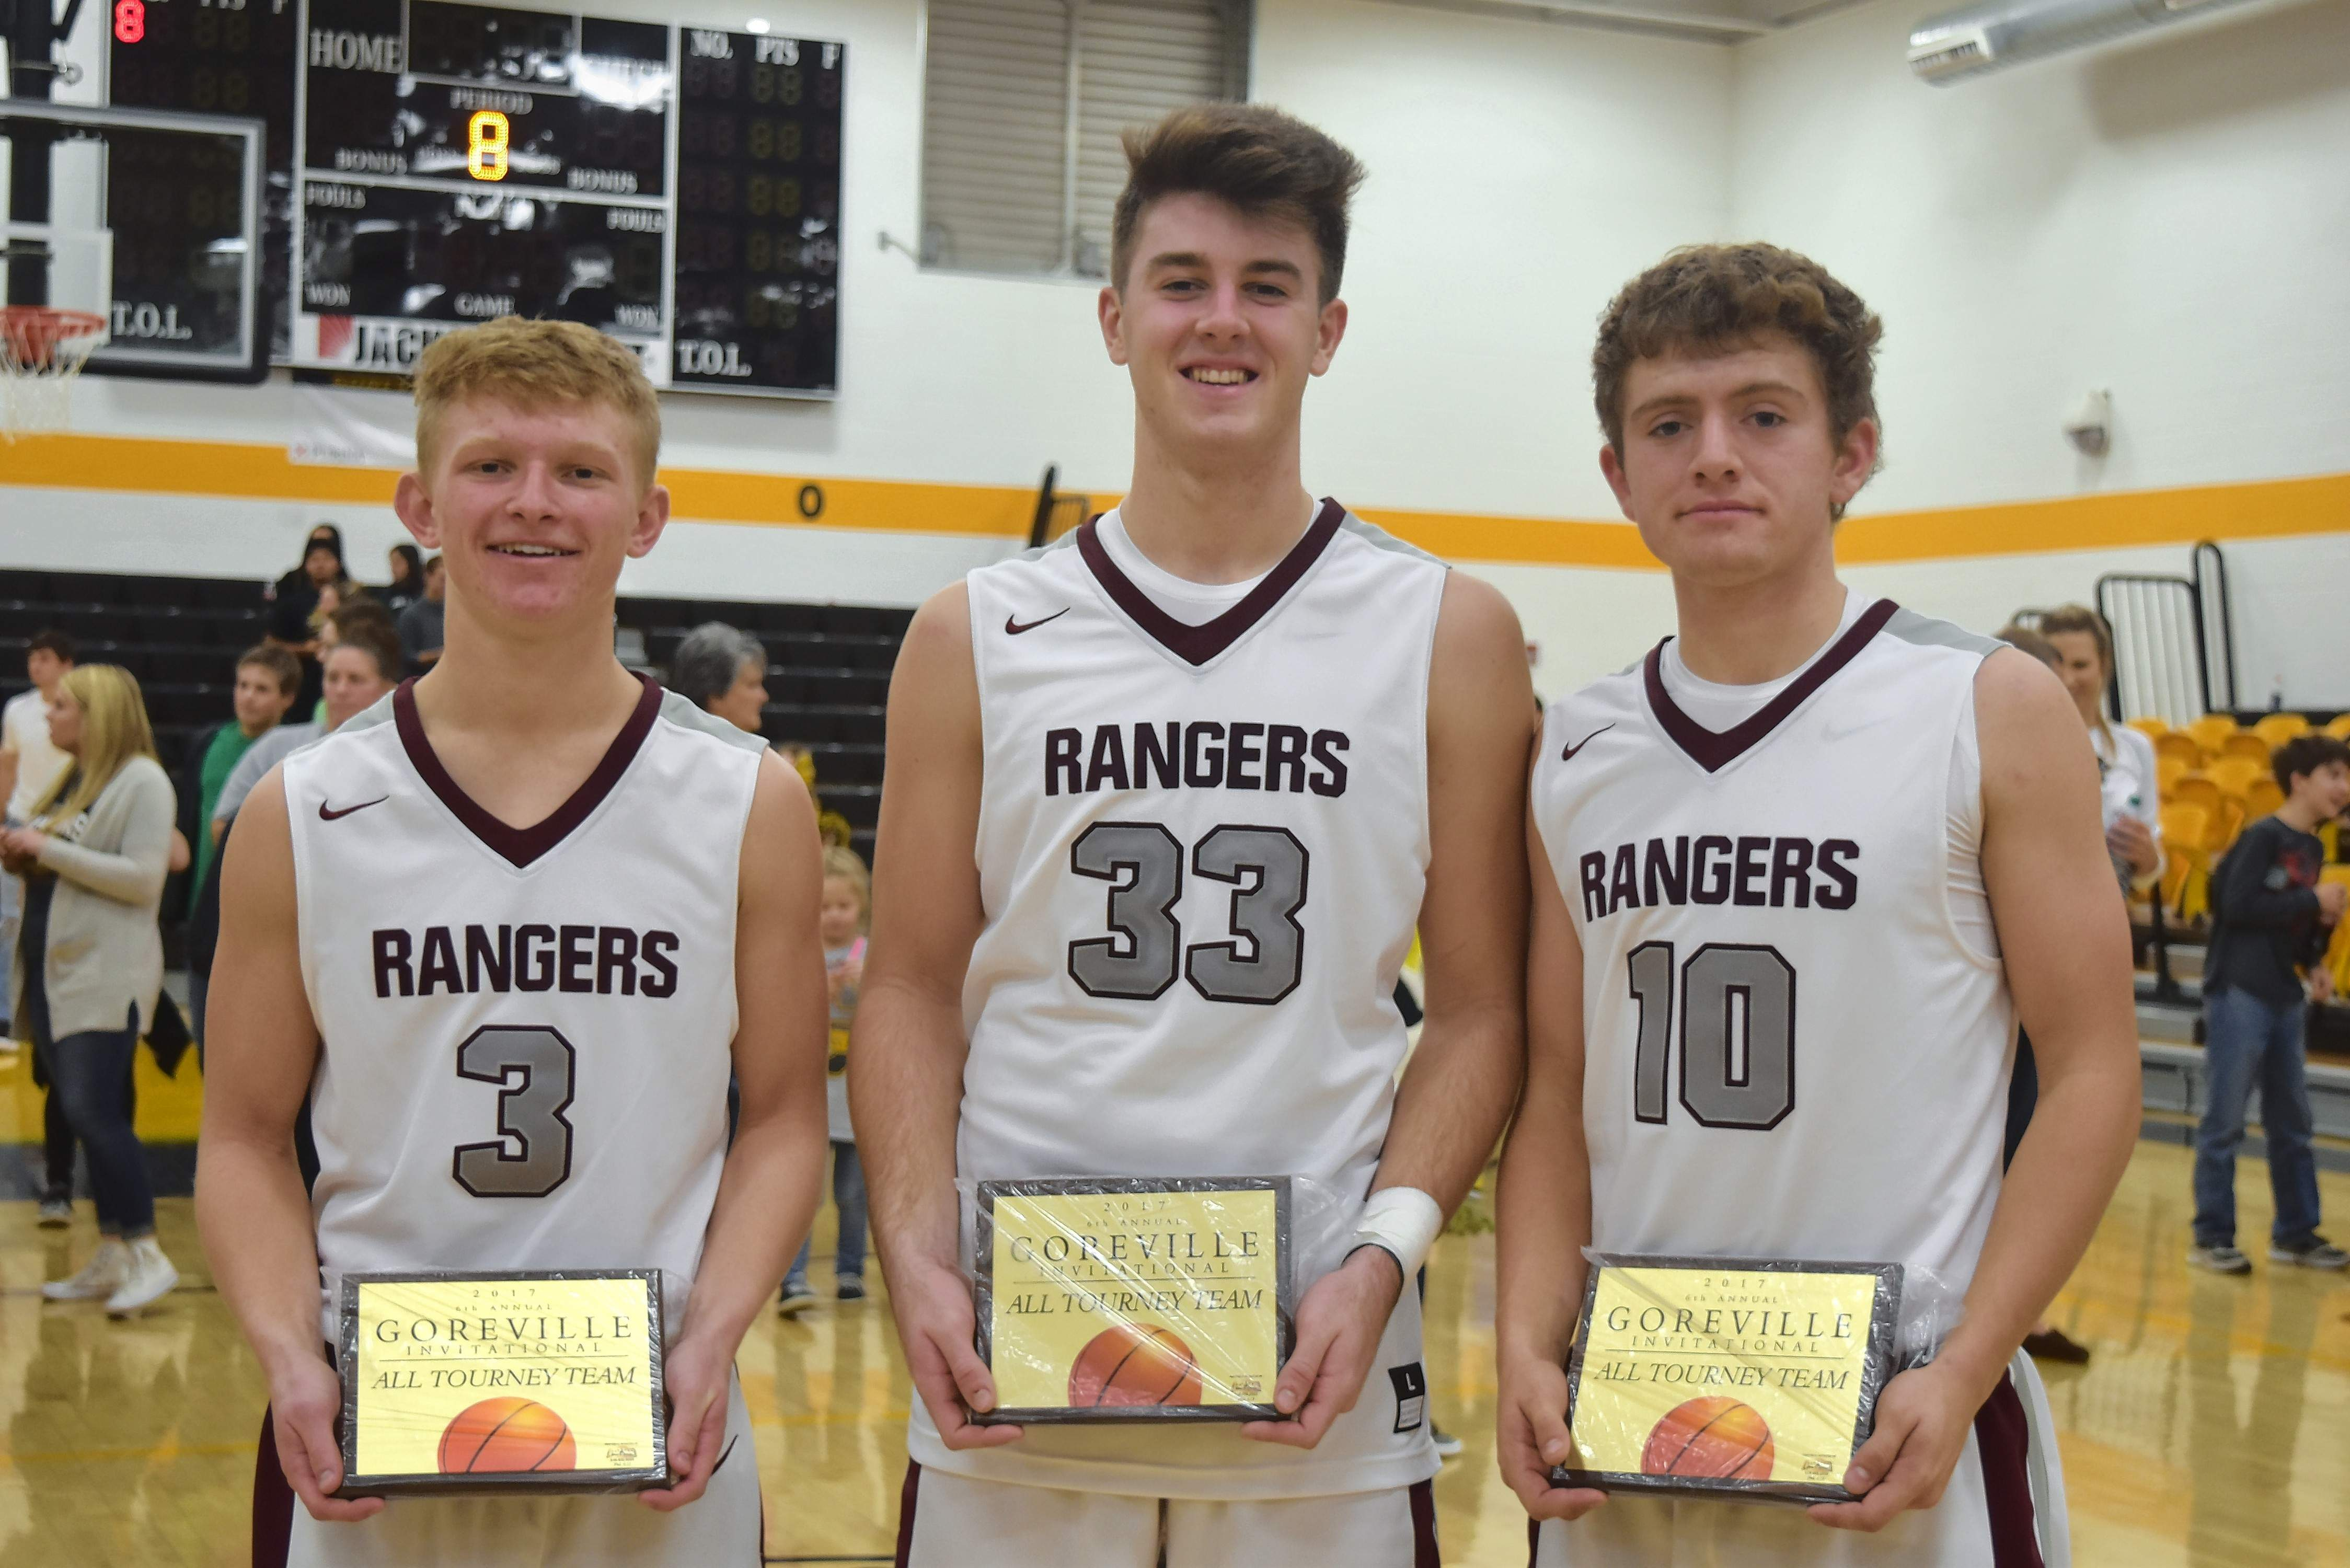 Three Benton Rangers were named to the Goreville Invitational Tournament All-Tourney team: from left, Cade Thomas, Parker Williams and Gehrig Wynn.